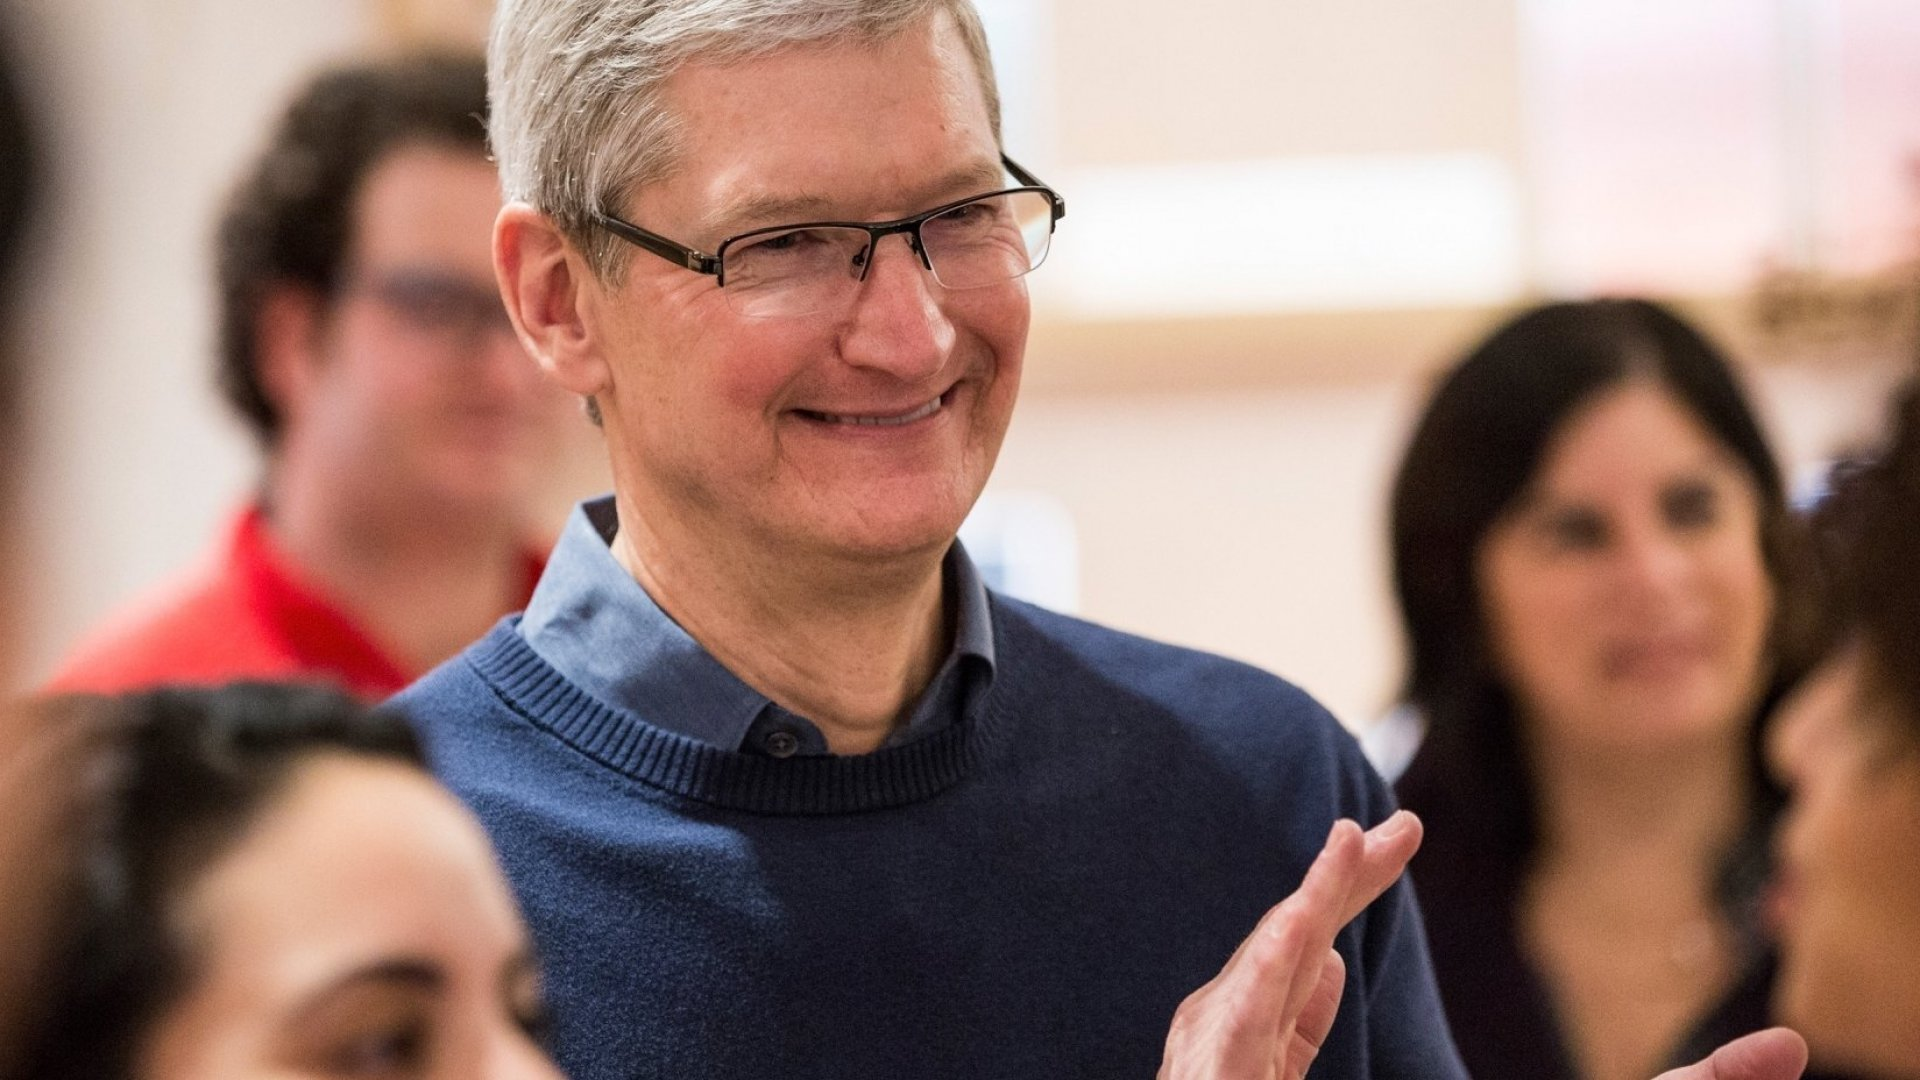 Apple's Revenue Drops as iPhone Sales Stall, But Its Cash Reserves Are Massive